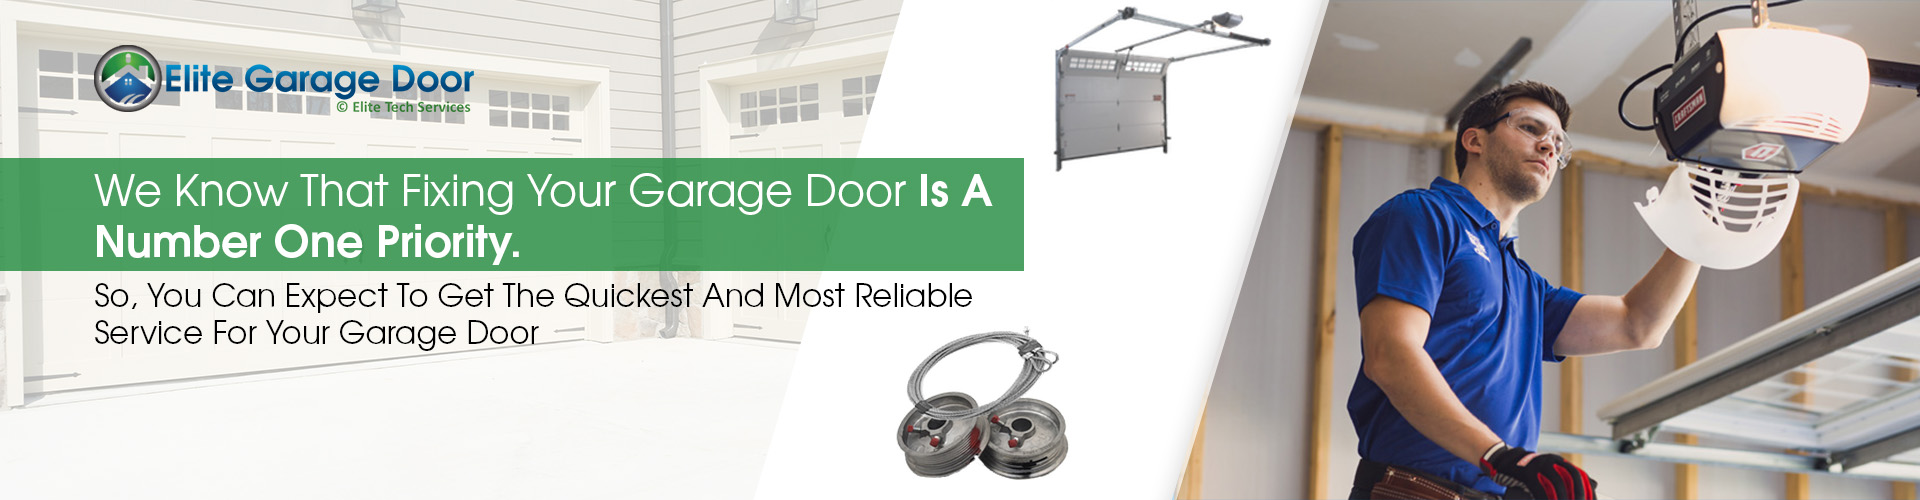 Commercial Garage Door Repair - Elite Tech Services, LLC